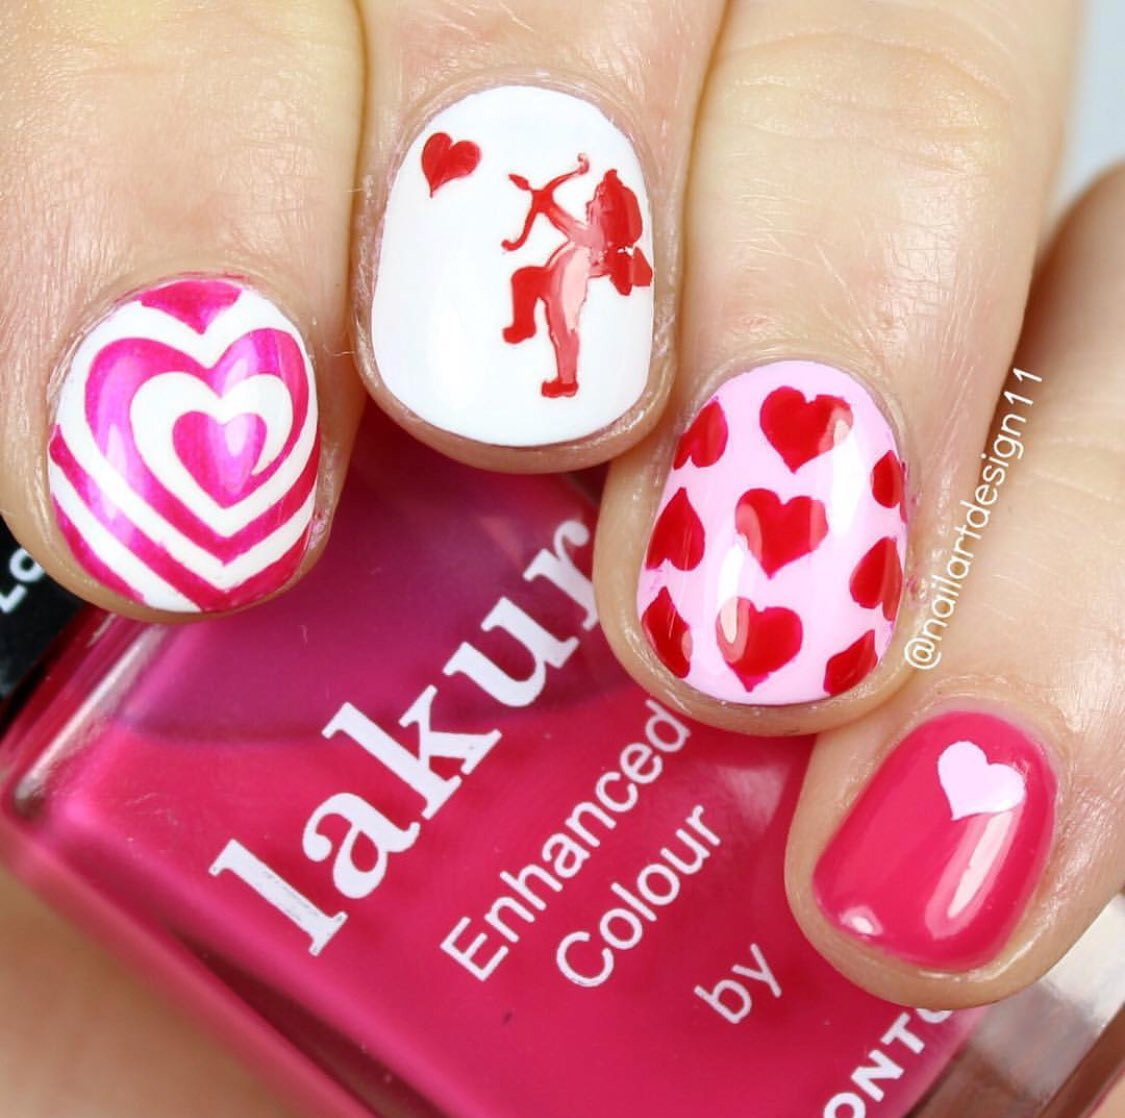 Snail vinyls snailvinyls twitter make sure your nails are ready like nailartdesign11s fabulous manicure using our i heart swirls nail vinyls heart nad cupid nailart stencils all prinsesfo Choice Image